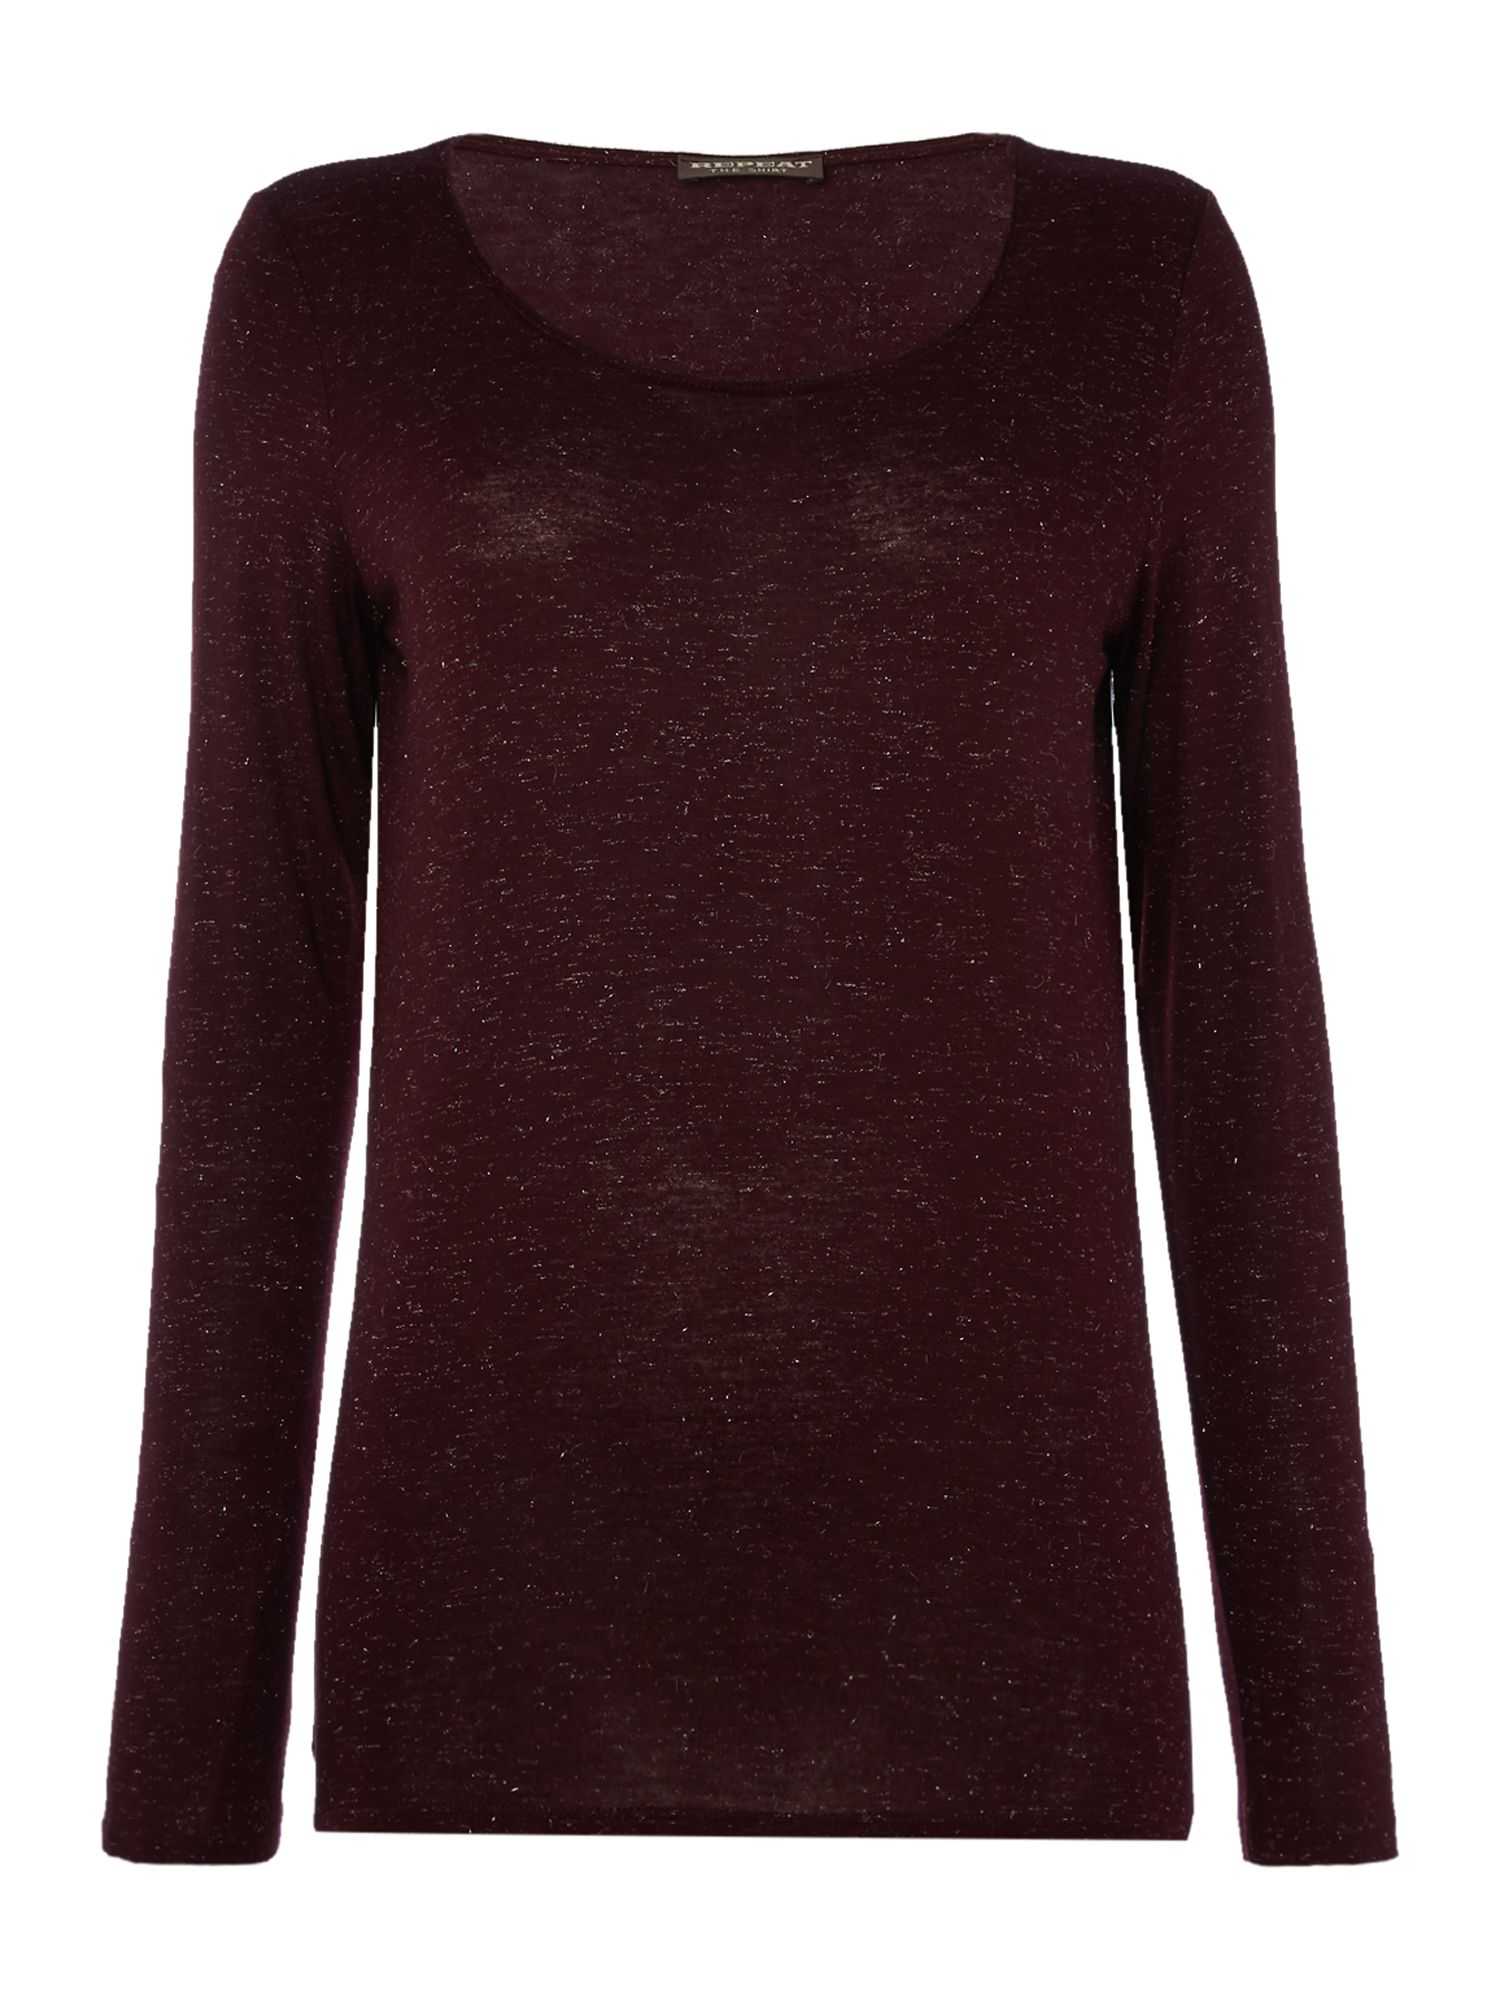 Repeat Cashmere Round neck long sleeve sparkle top, Red